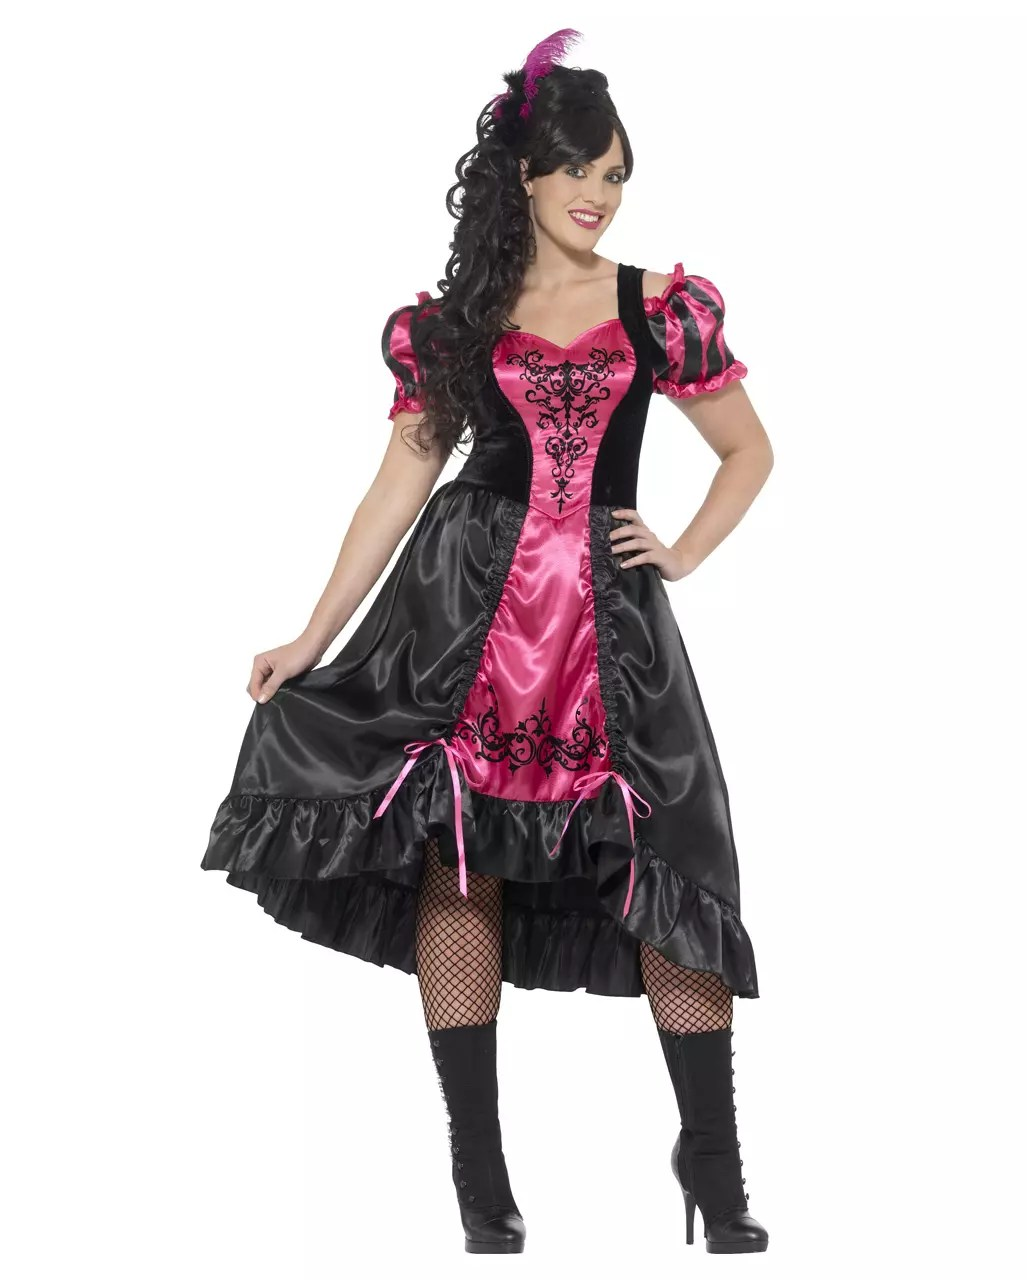 Halloween Kostüm Kinder Expressversand Sassy Girl Plus Size Burlesque Kleid